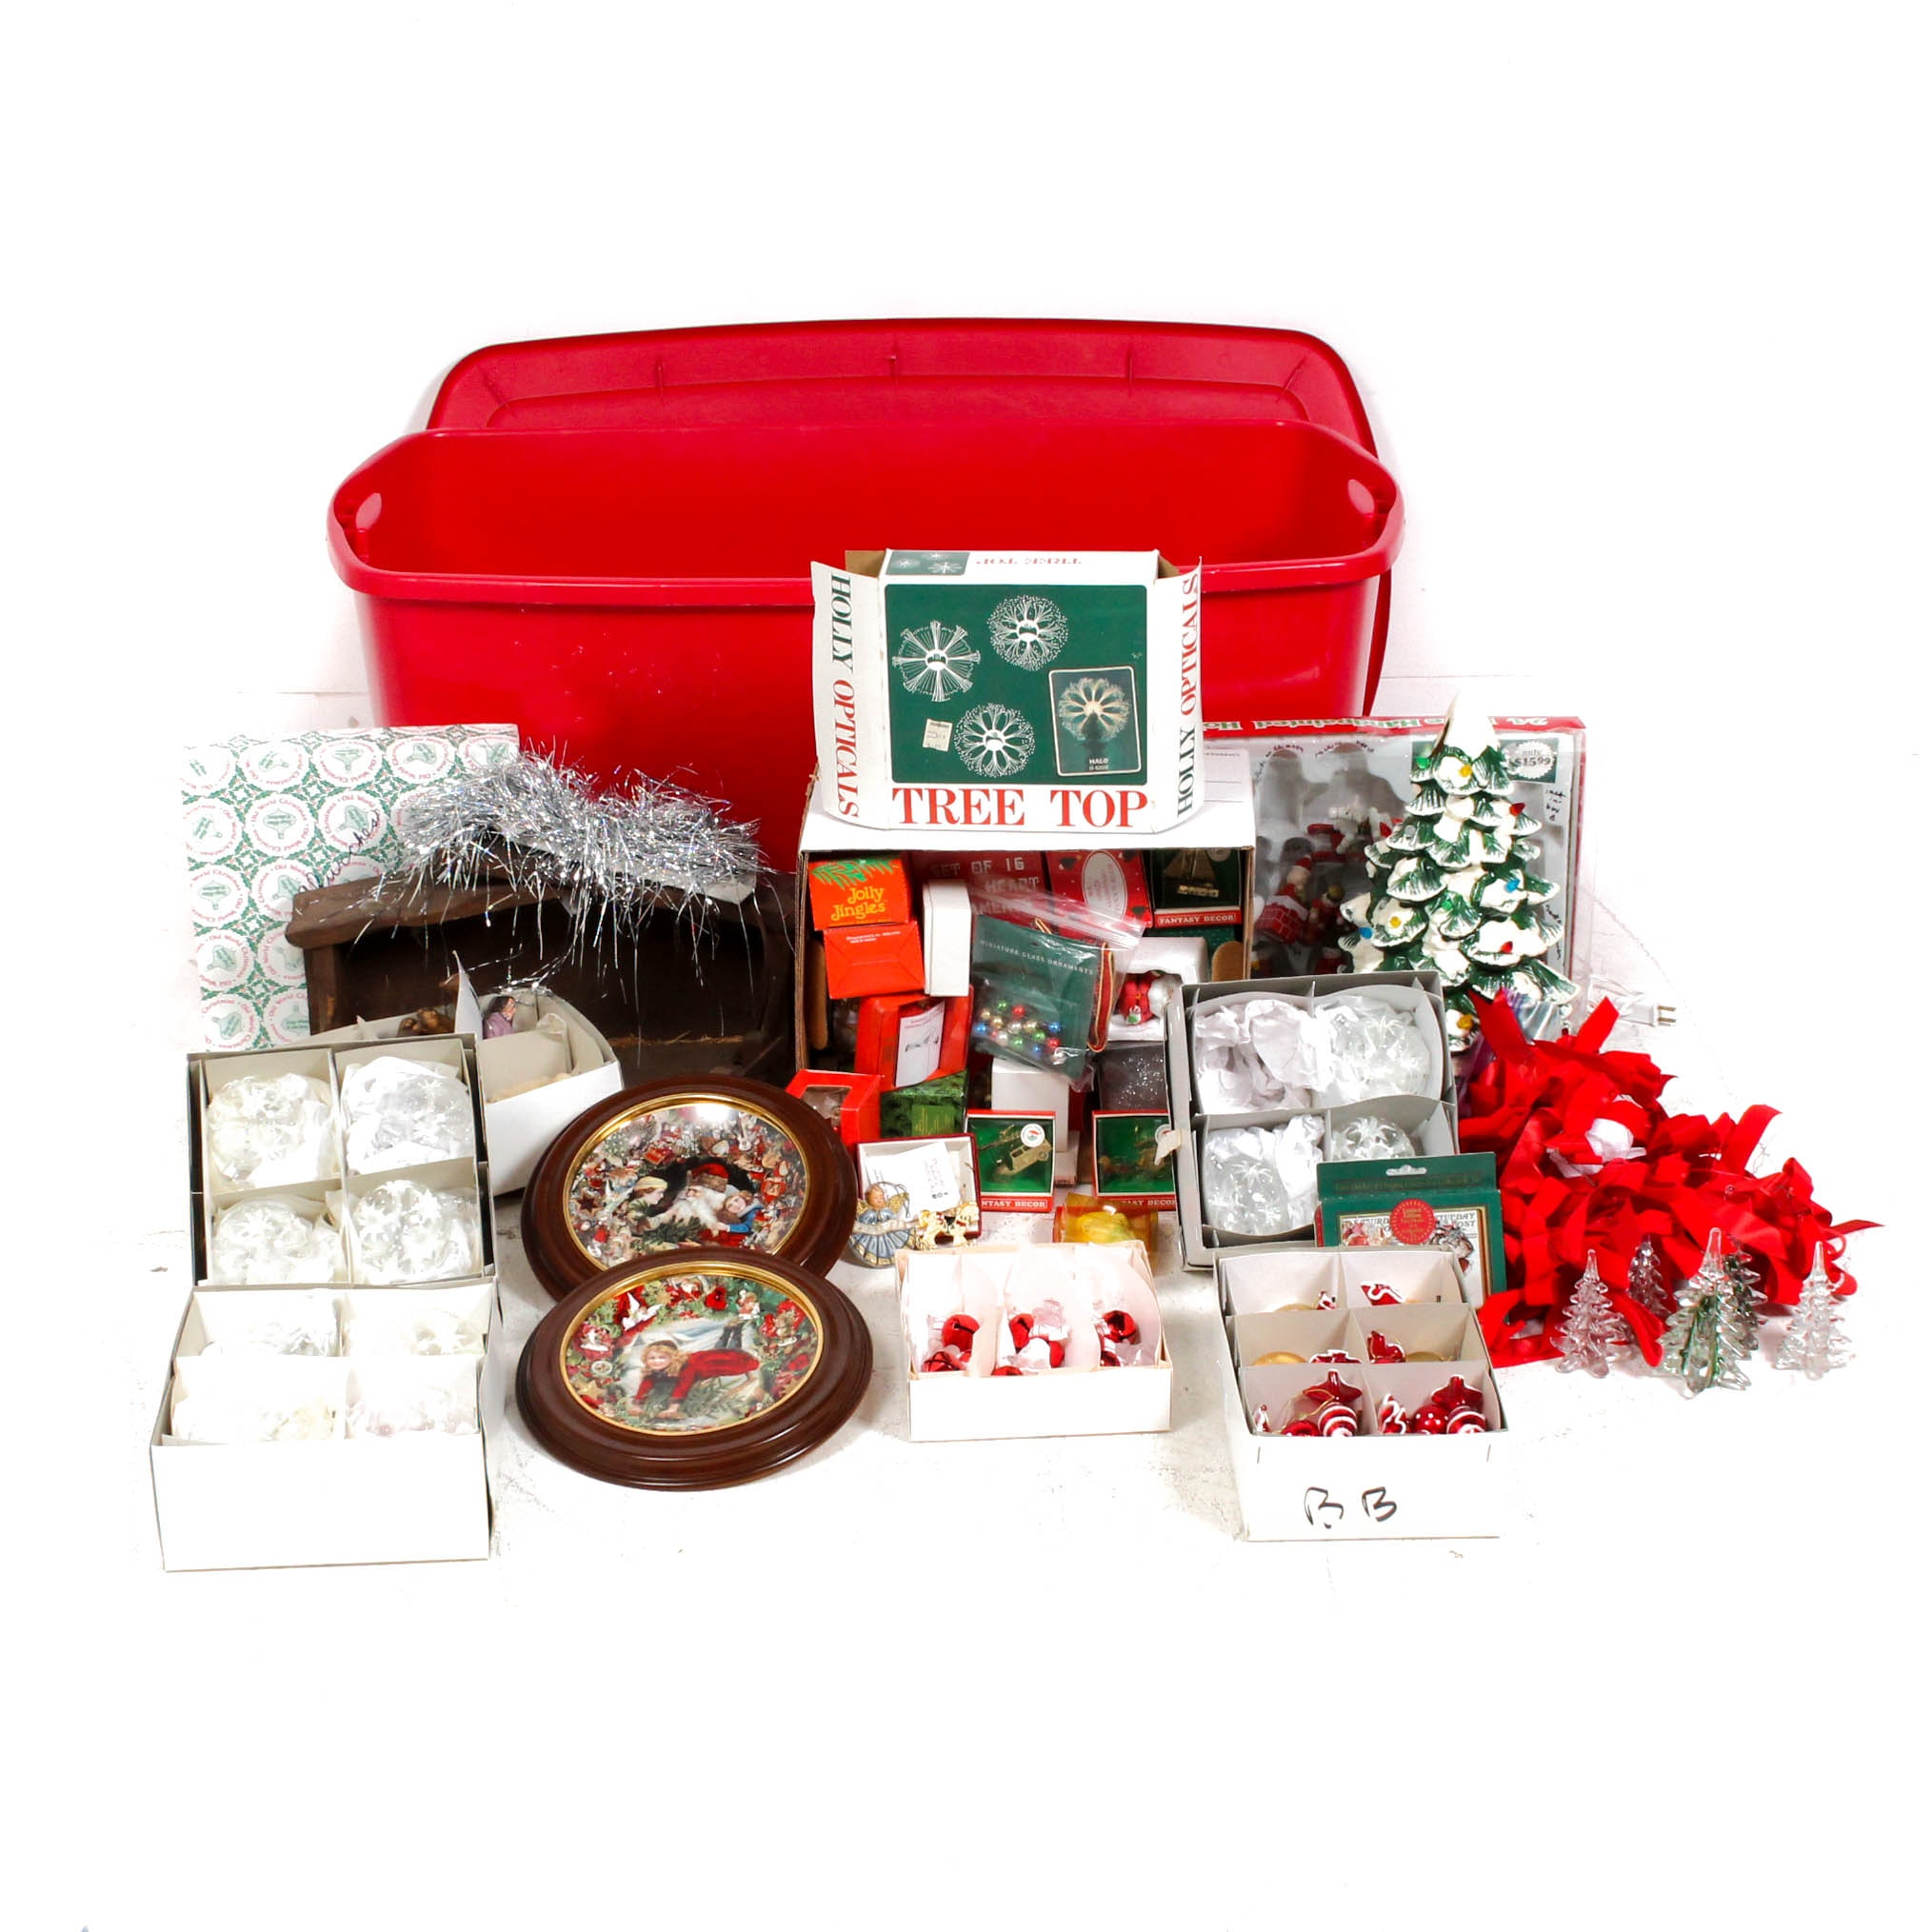 Christmas Decor Featuring Nativity, Ornaments and Storage Bin